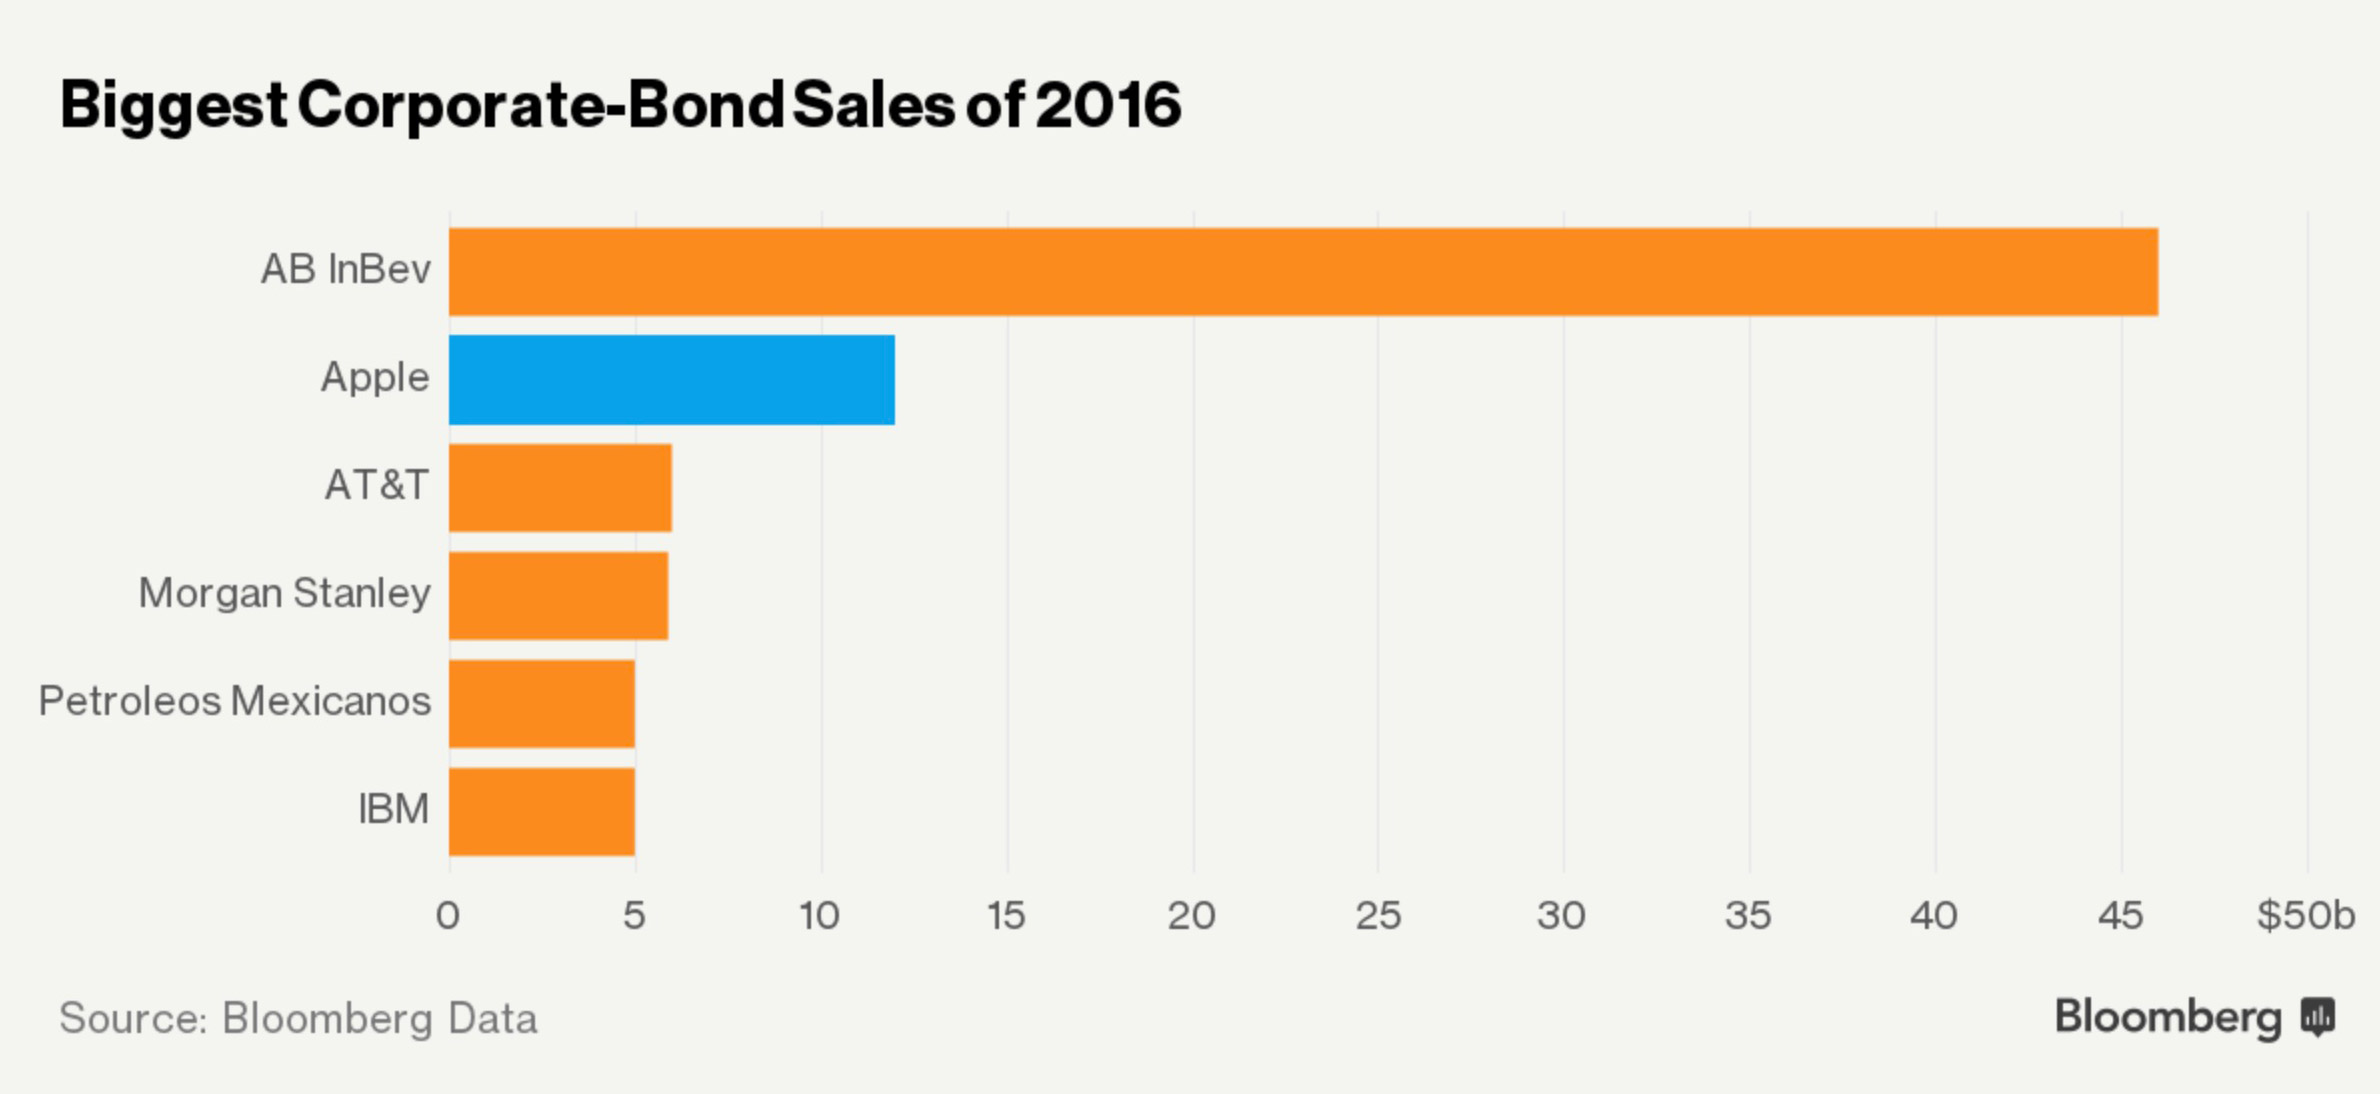 Biggest Corporate-Bond Sales of 2016